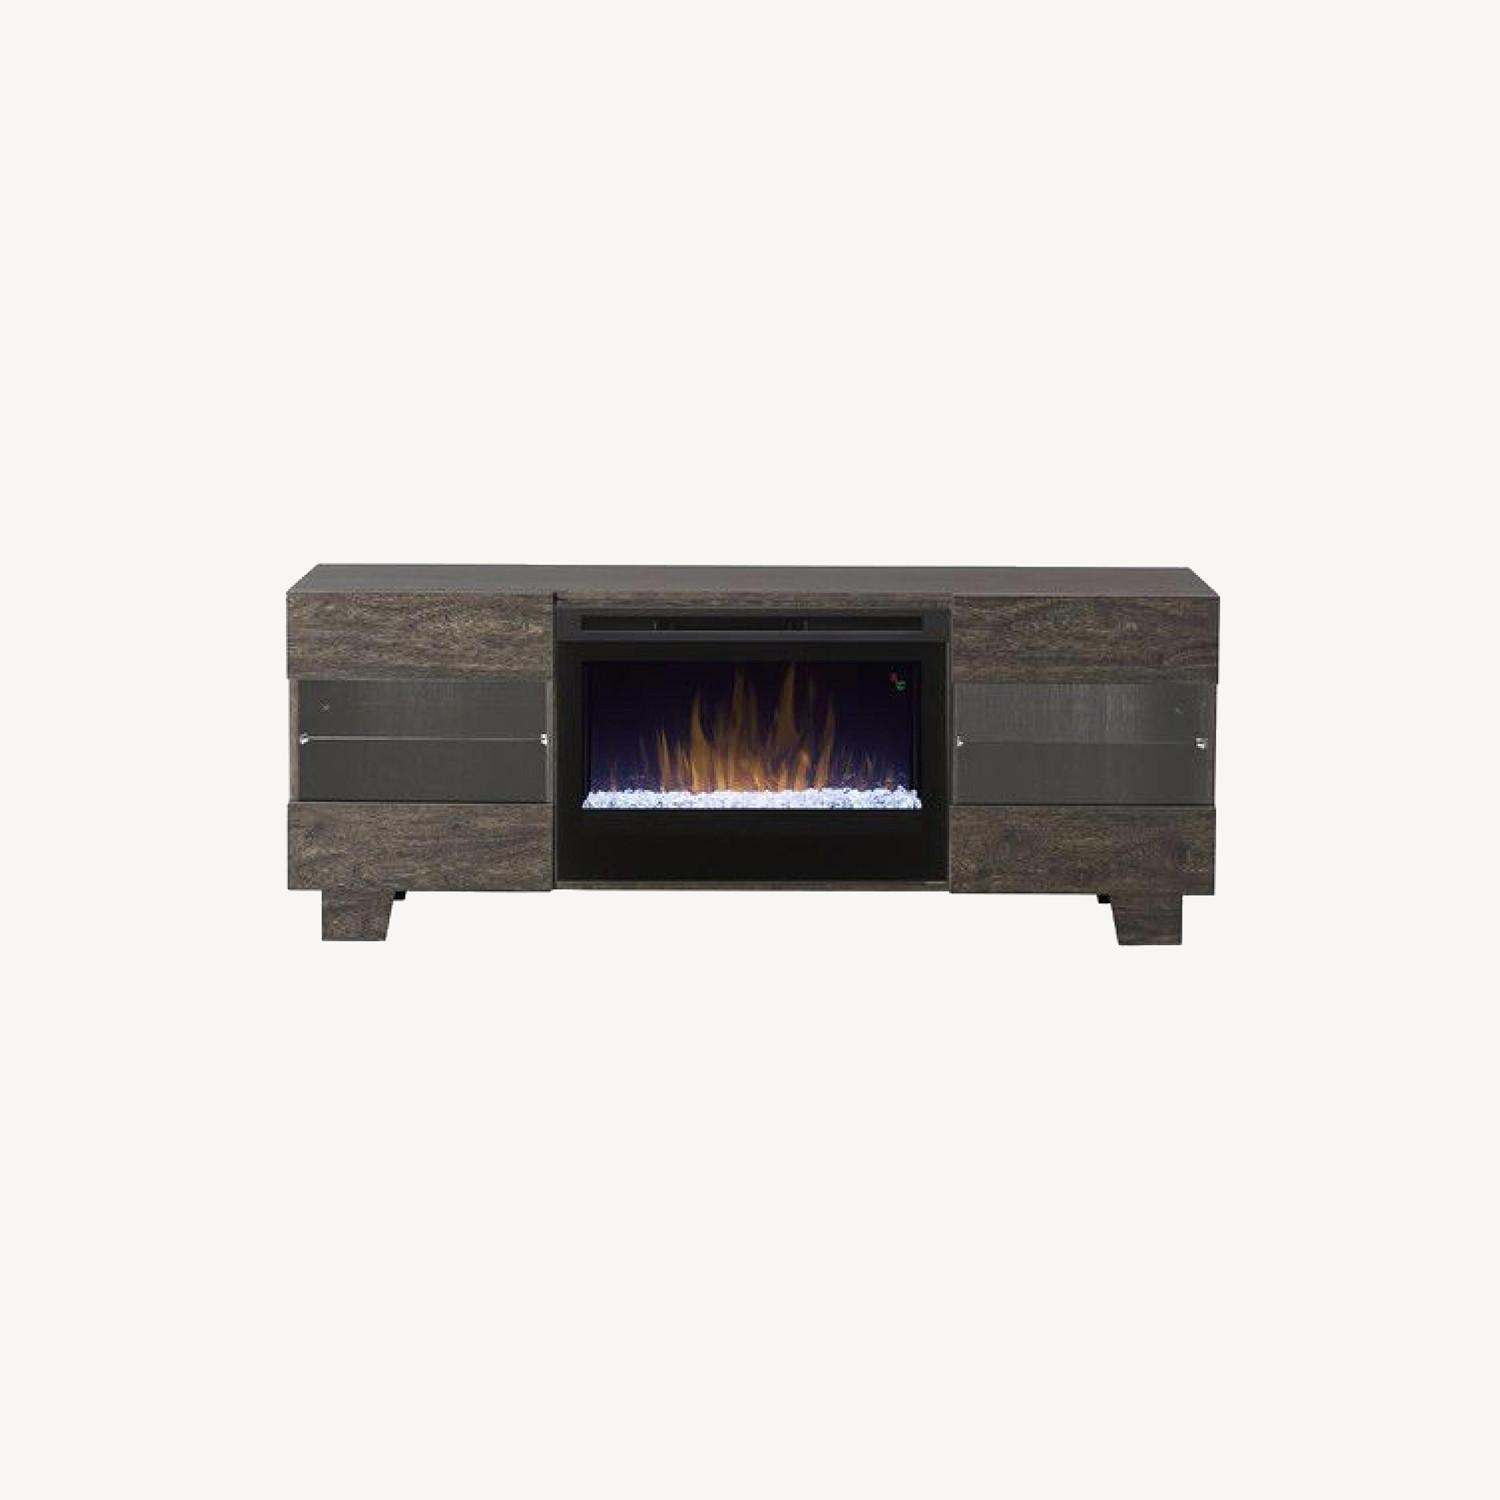 Wayfair Max TV Stand with Electric Fireplace by Dimplex - image-0